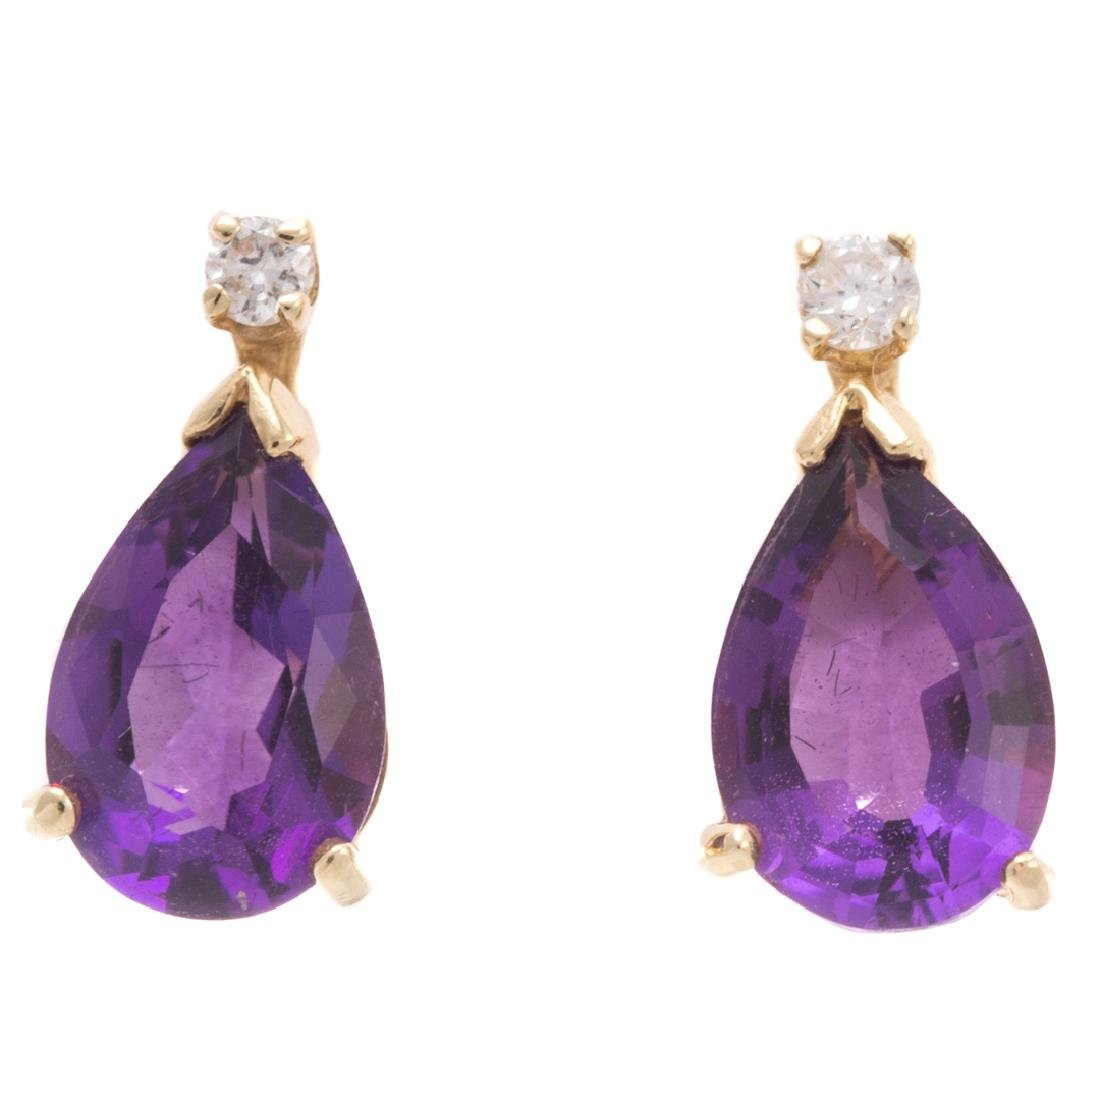 A Lady's Amethyst Ring & Earrings - 7